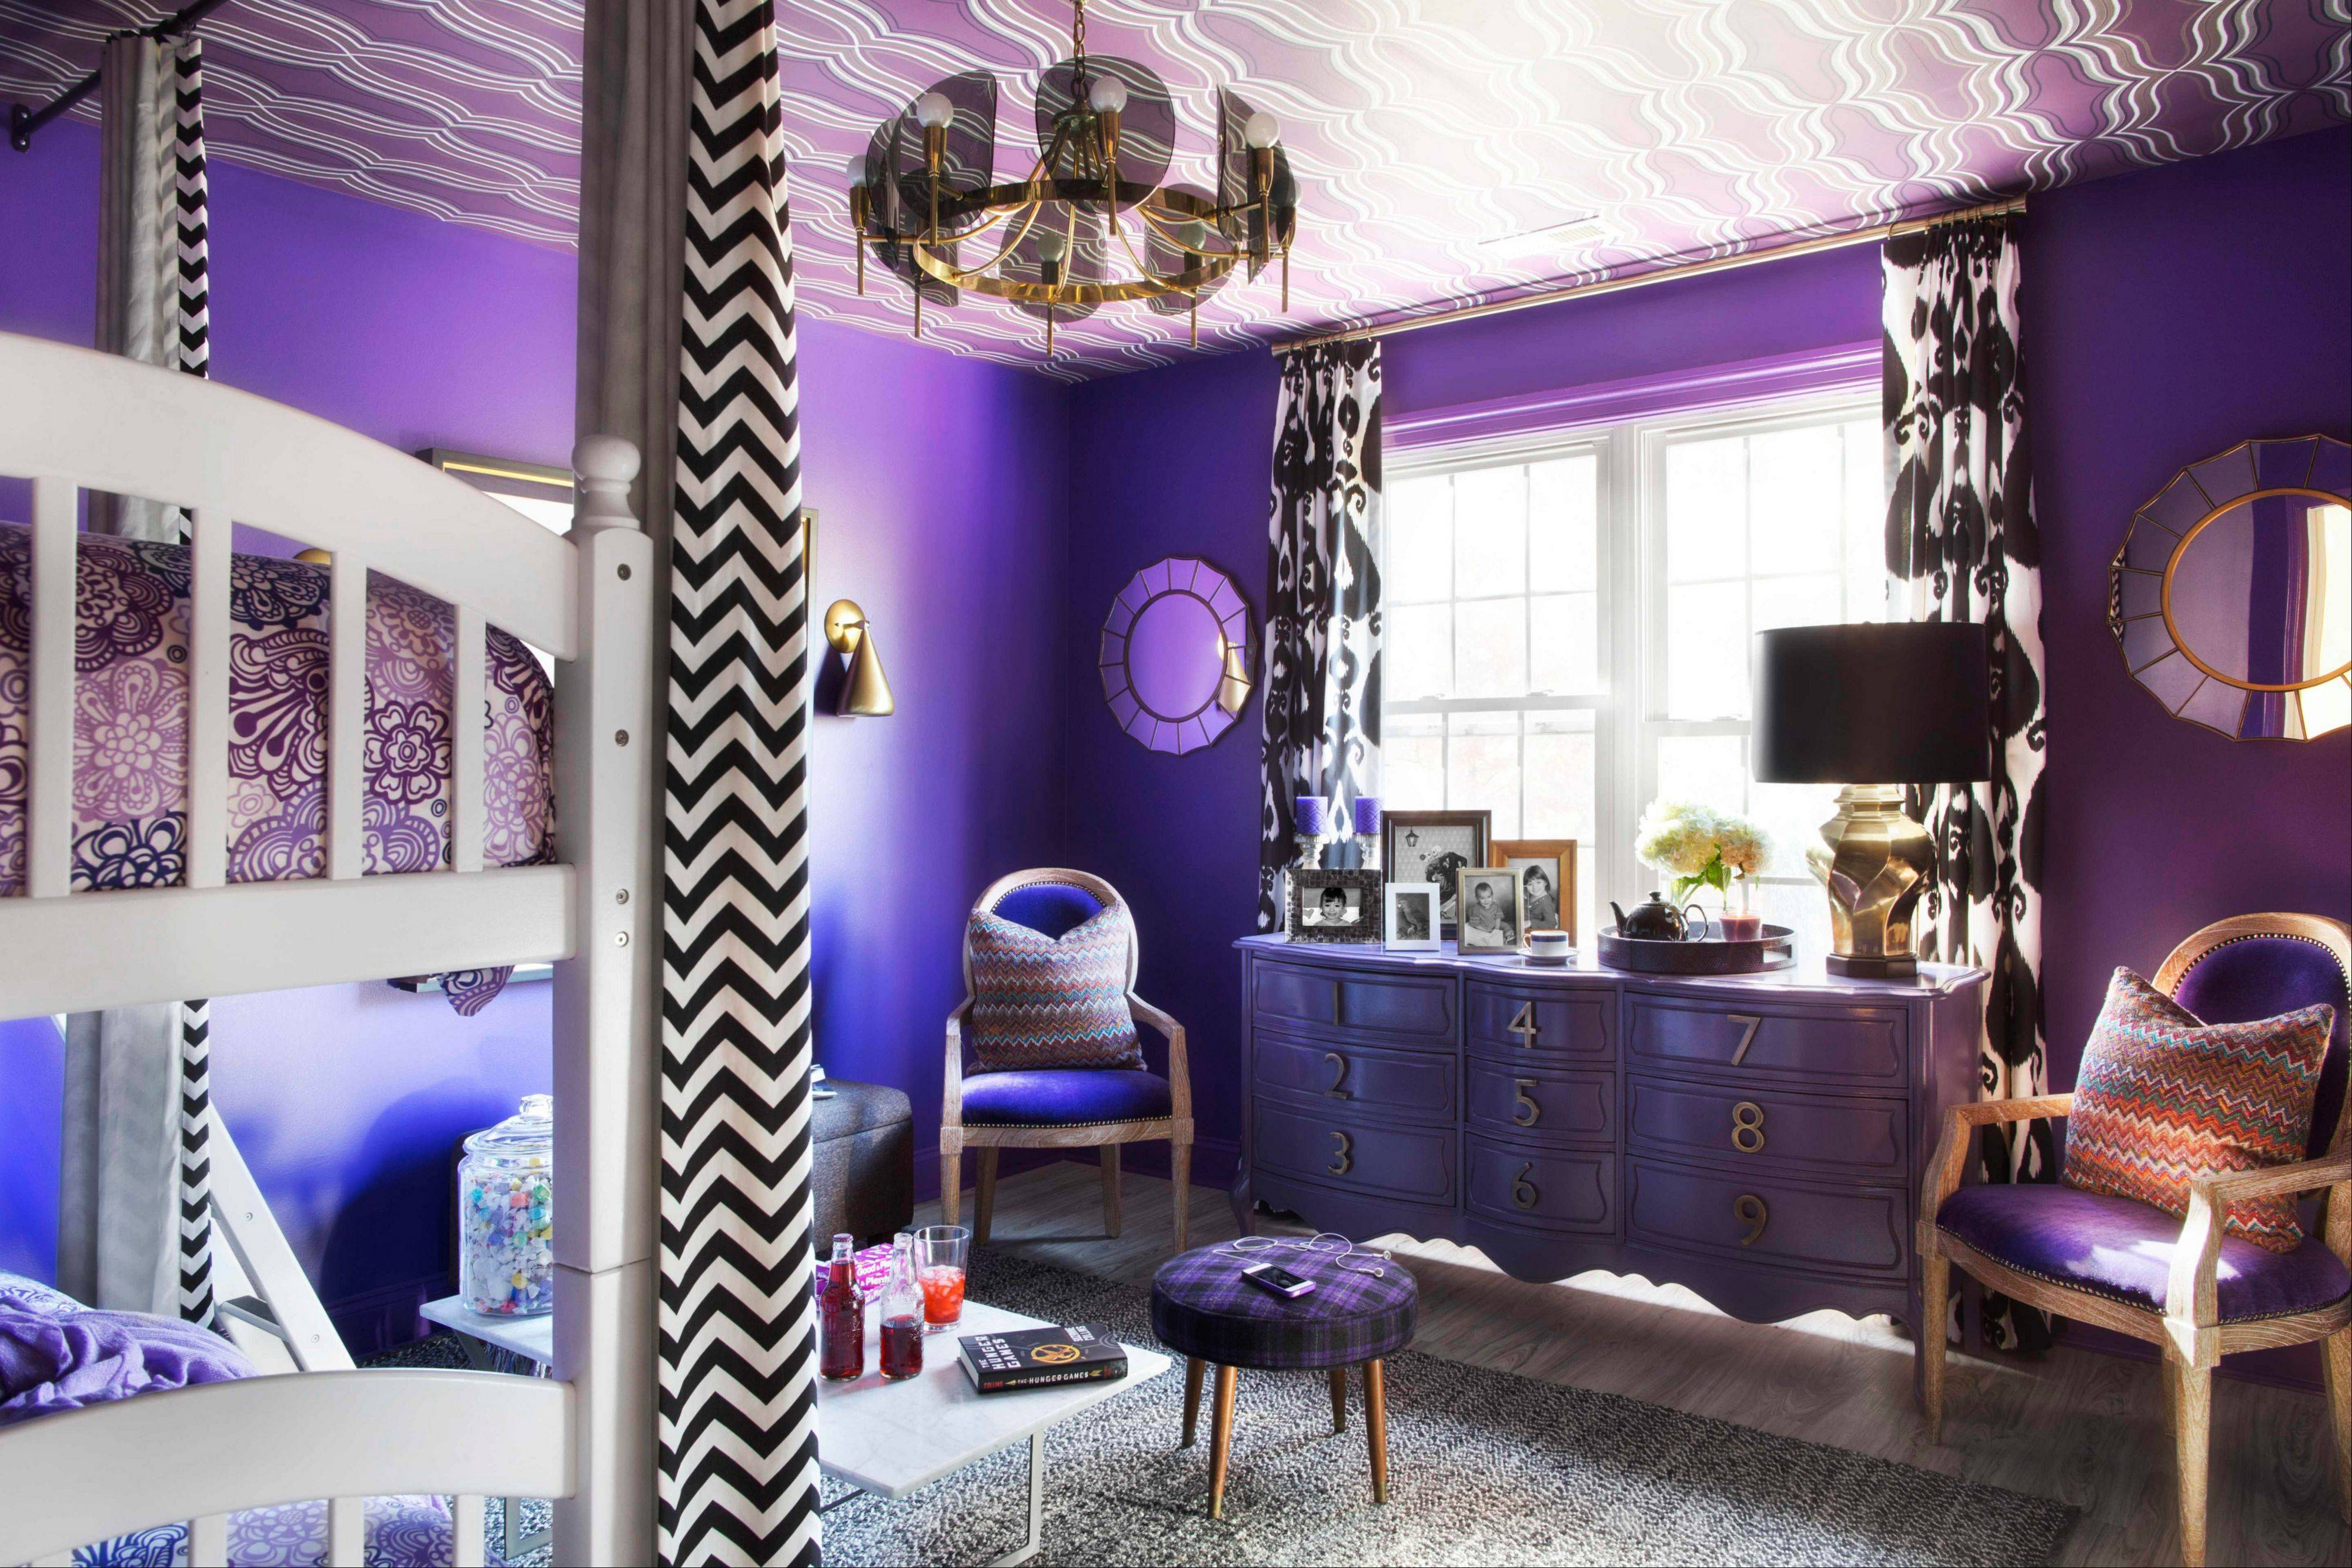 Designer Brian Patrick Flynn created this tween girl's room for HGTV.com. It features the a shade of red-violet similar to the Pantone color of the year for 2014. Flynn suggests pairing the color with neutrals like white and black to make it a bit lighter and more playful.